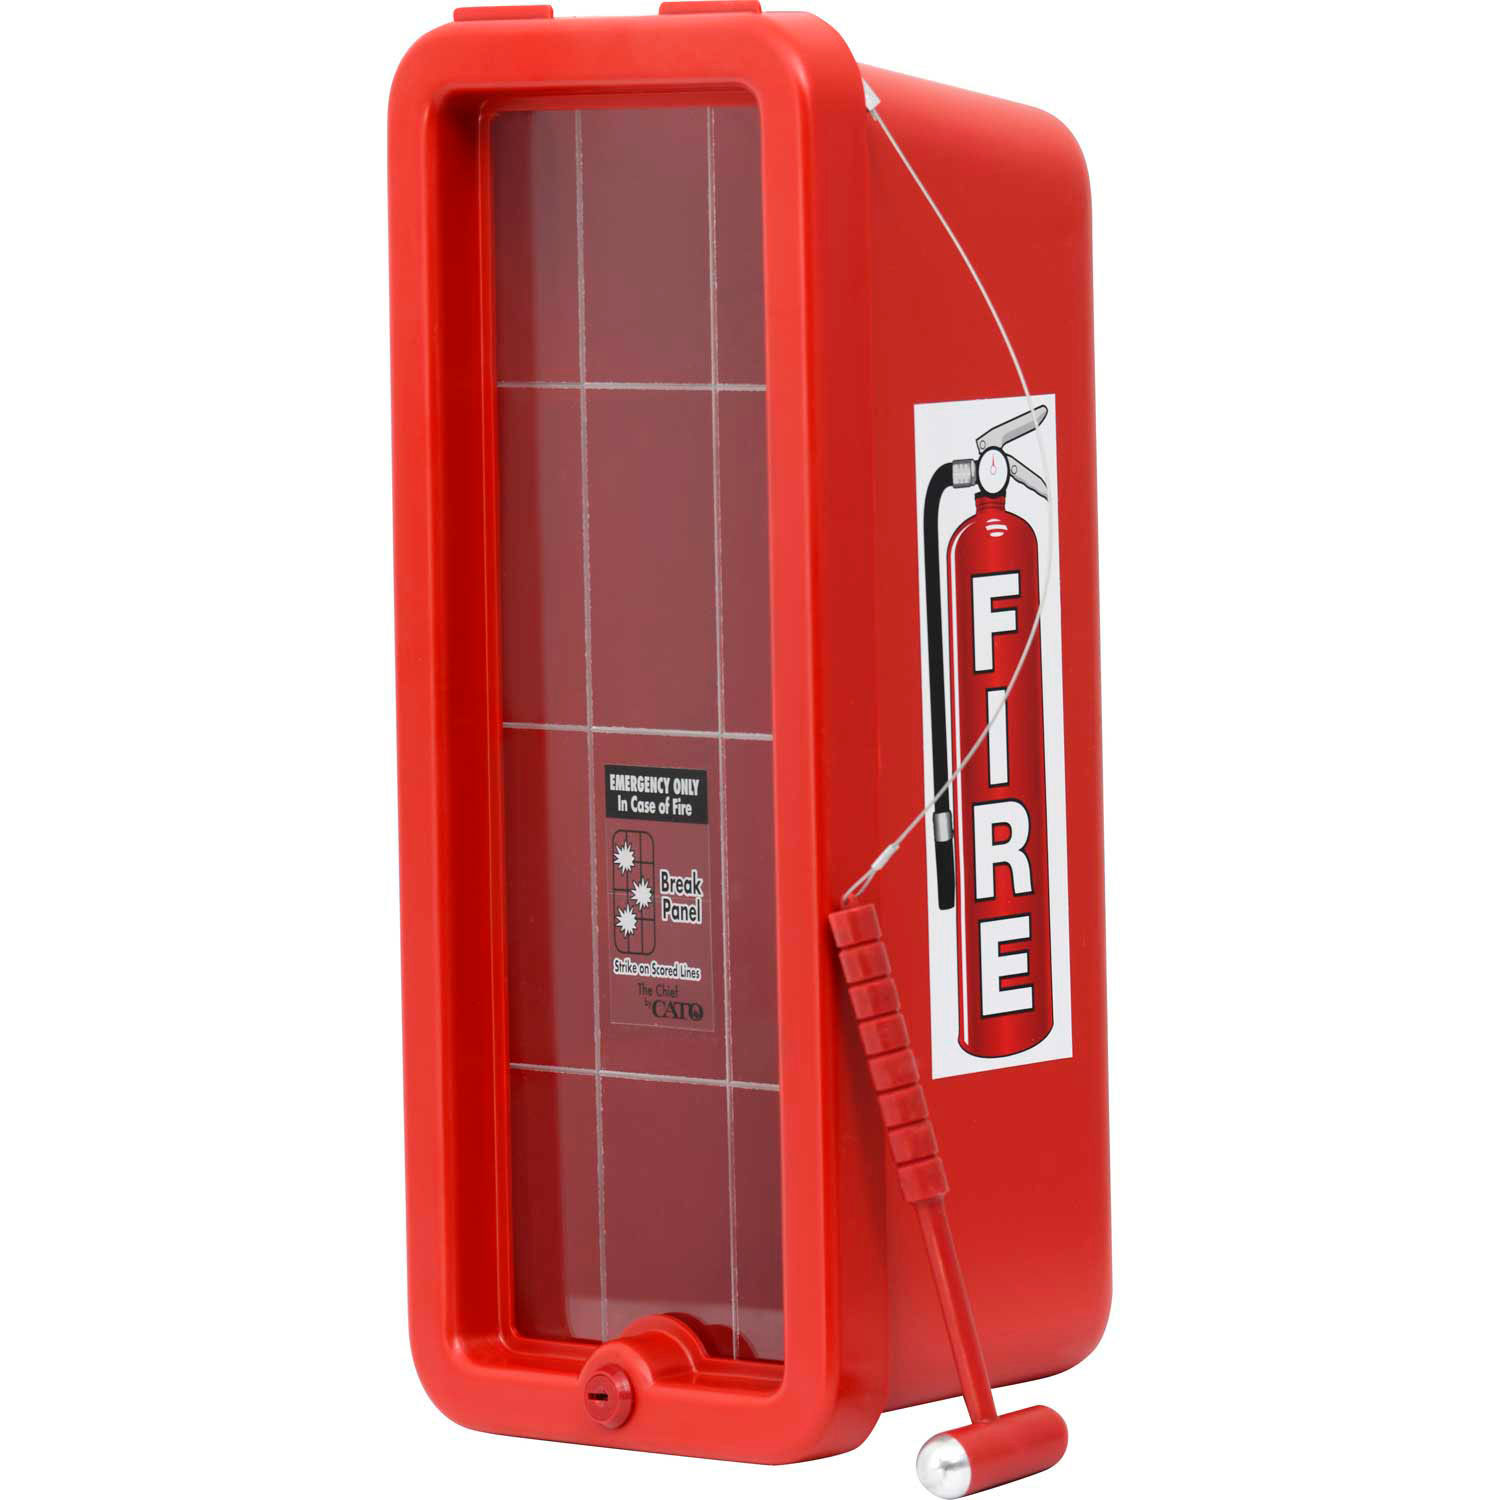 Fire Protection Fire Extinguisher Cabinets Parts Cato